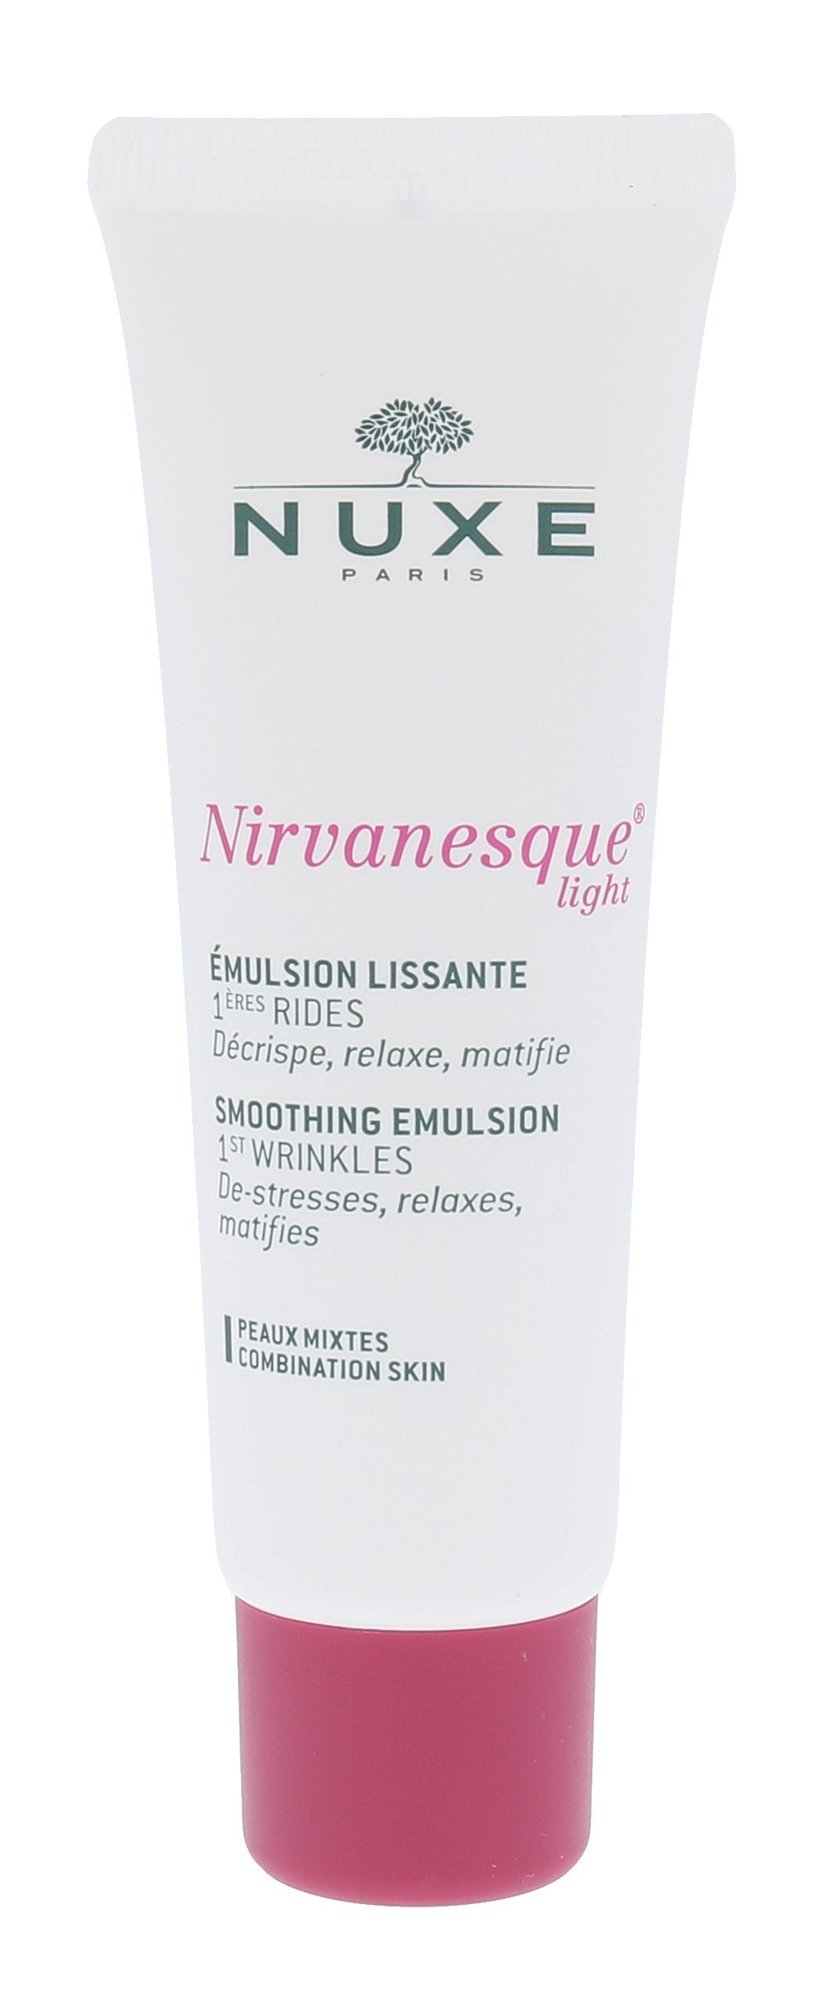 Nuxe Nirvanesque Light 1st Wrinkles Smoothing Emulsion Cosmetic 50ml